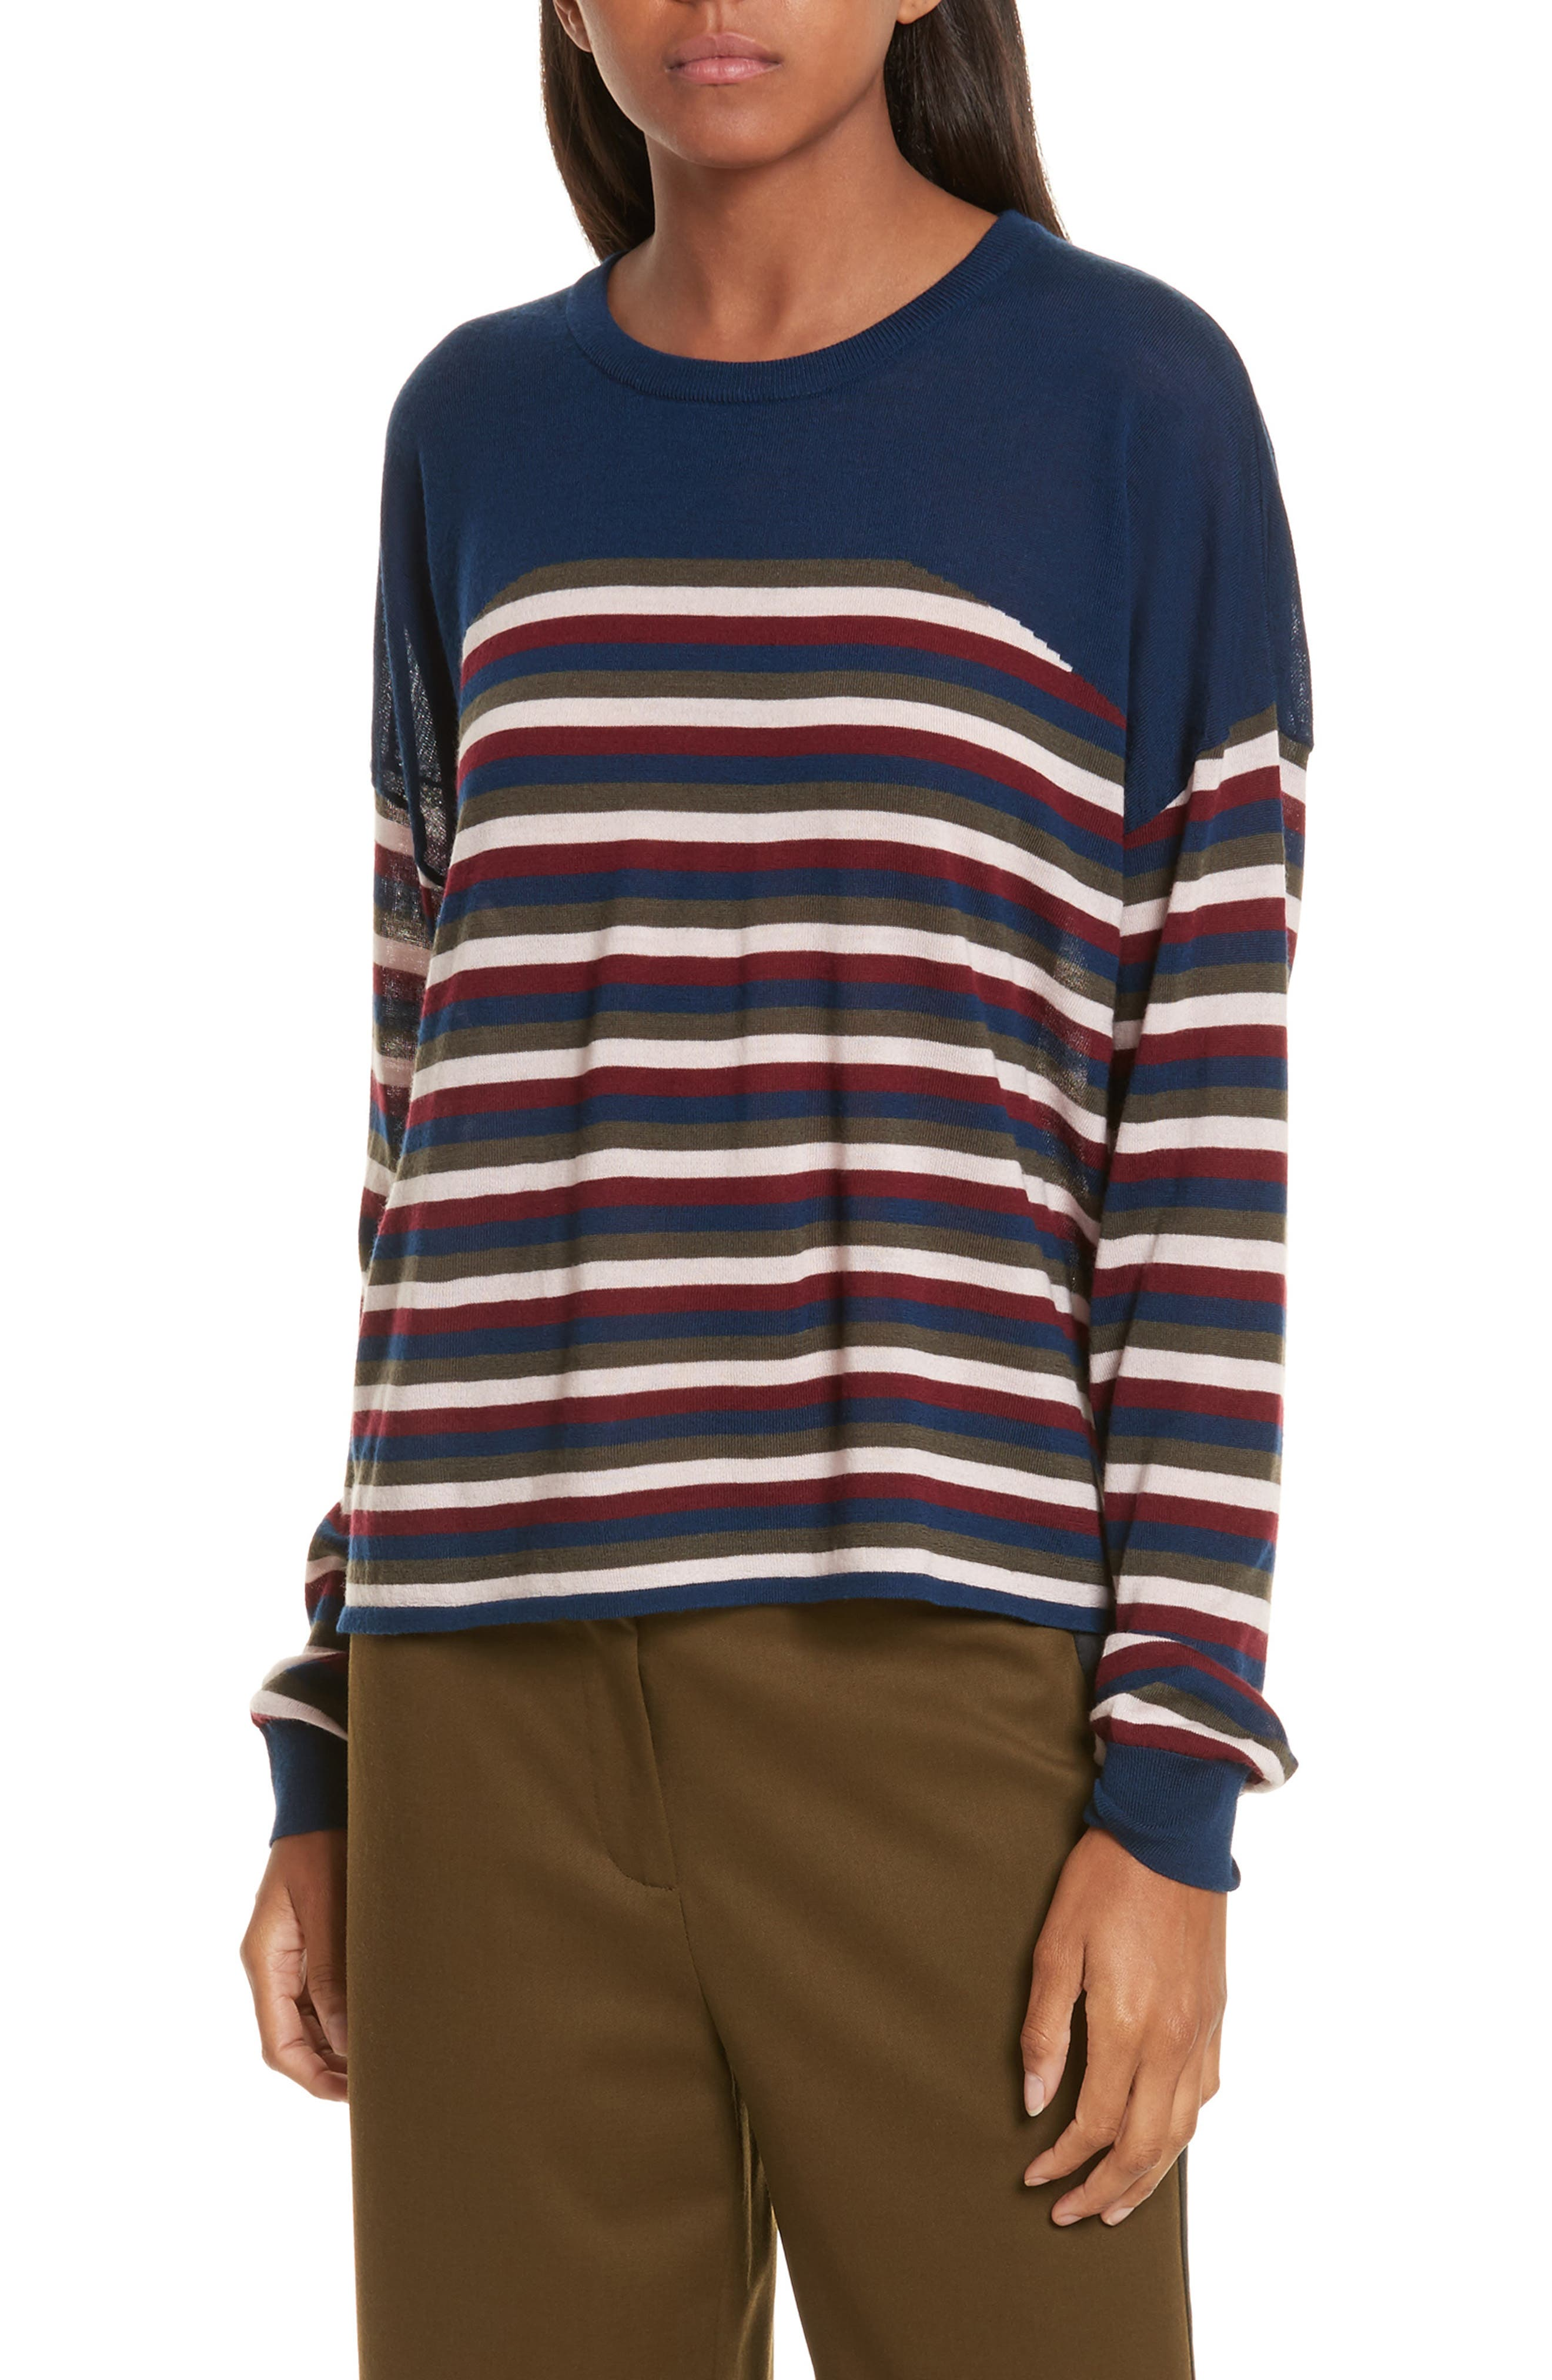 GREY Jason Wu Stripe Knit Pullover,                         Main,                         color, 404